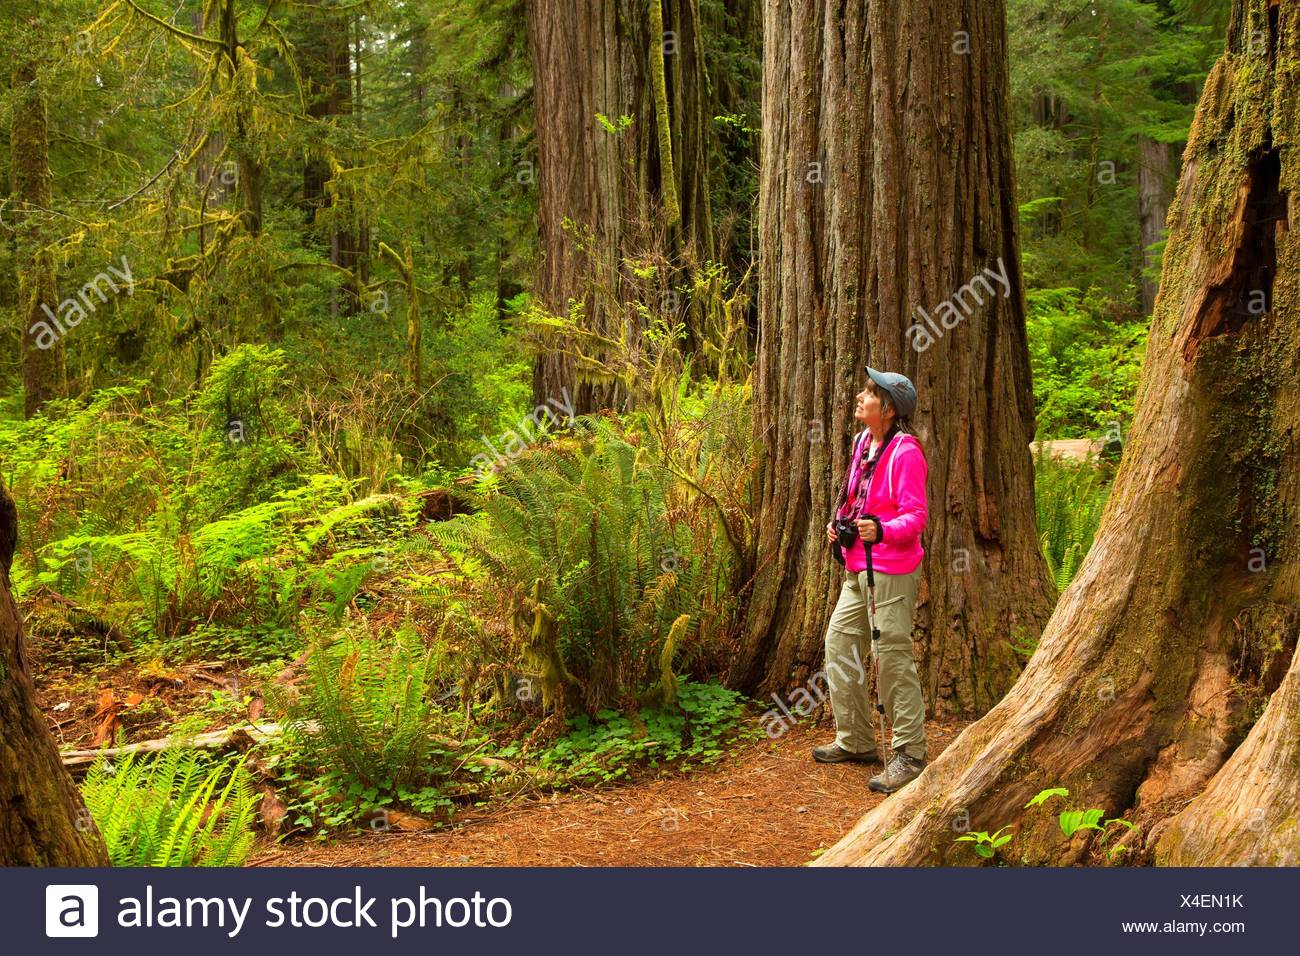 Hiker in Coast redwood (Sequoia sempervirens) forest along Simpson-Reed Discovery Trail, Jedediah Smith Redwoods State Park, Redwood National Park, - Stock Image